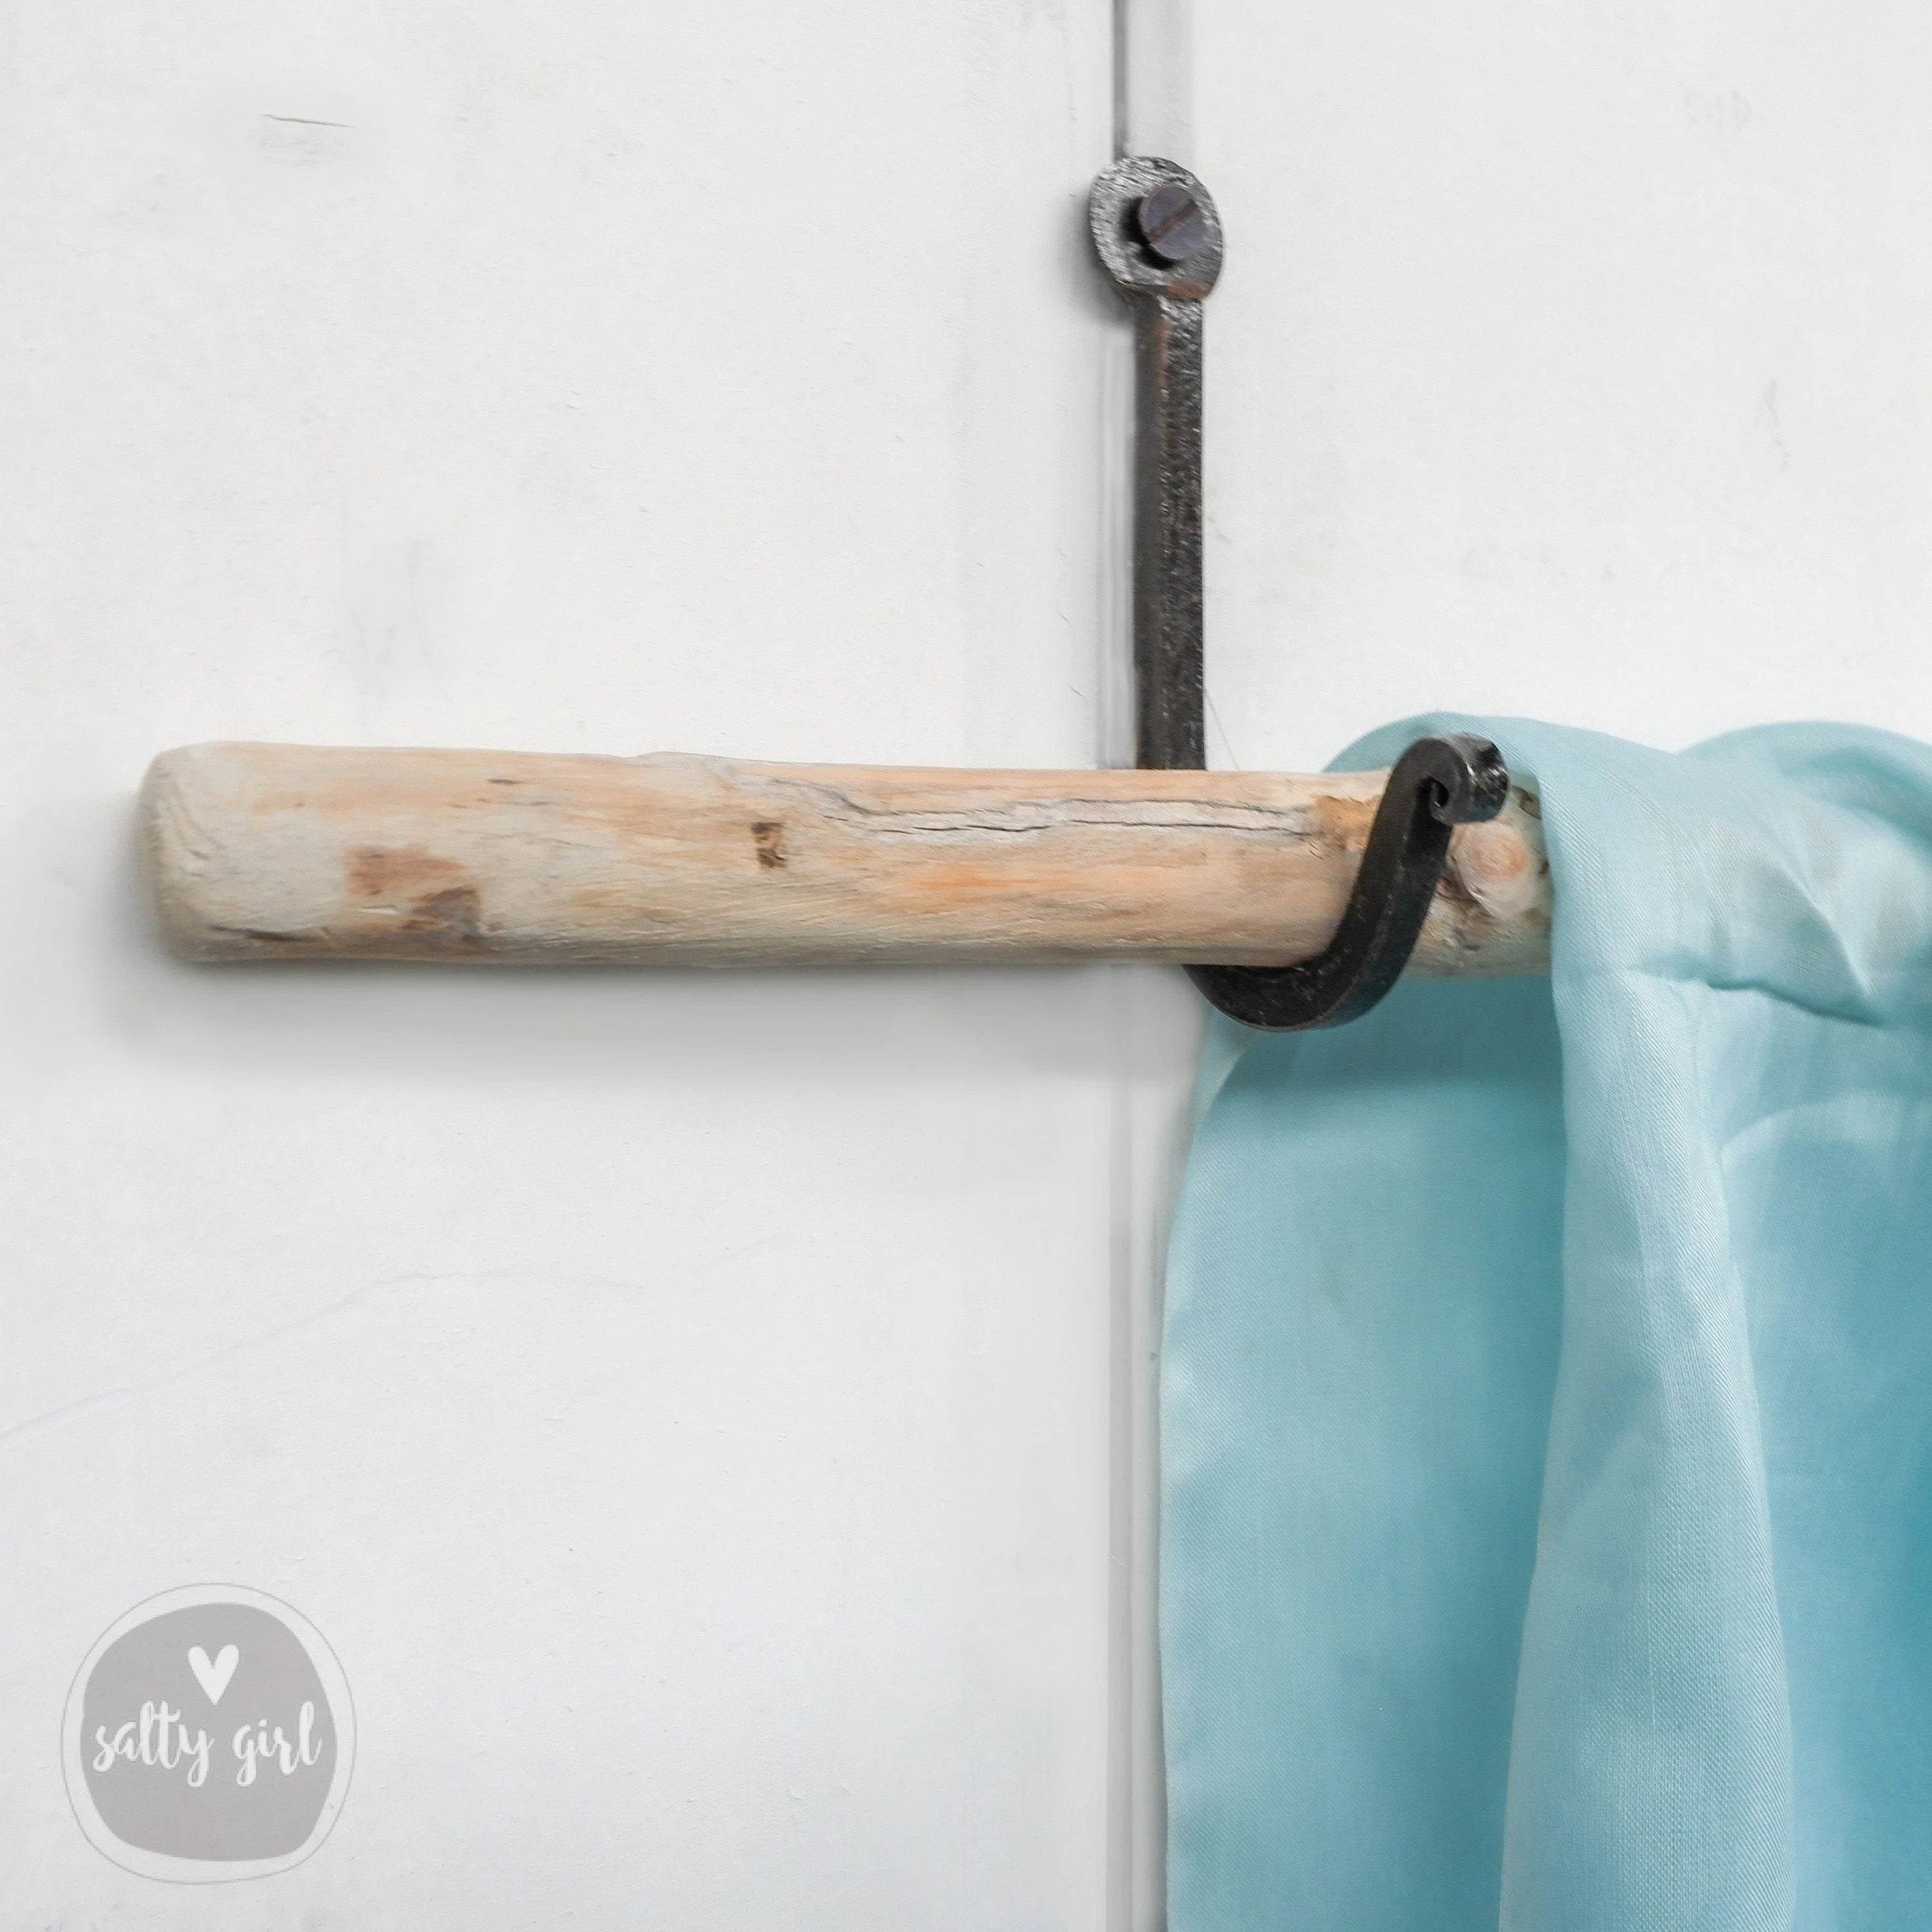 driftwood curtain rods with hand forged iron hangers 2 driftwood branches 24 48 x 3 4 4 hooks home decor curtain rods